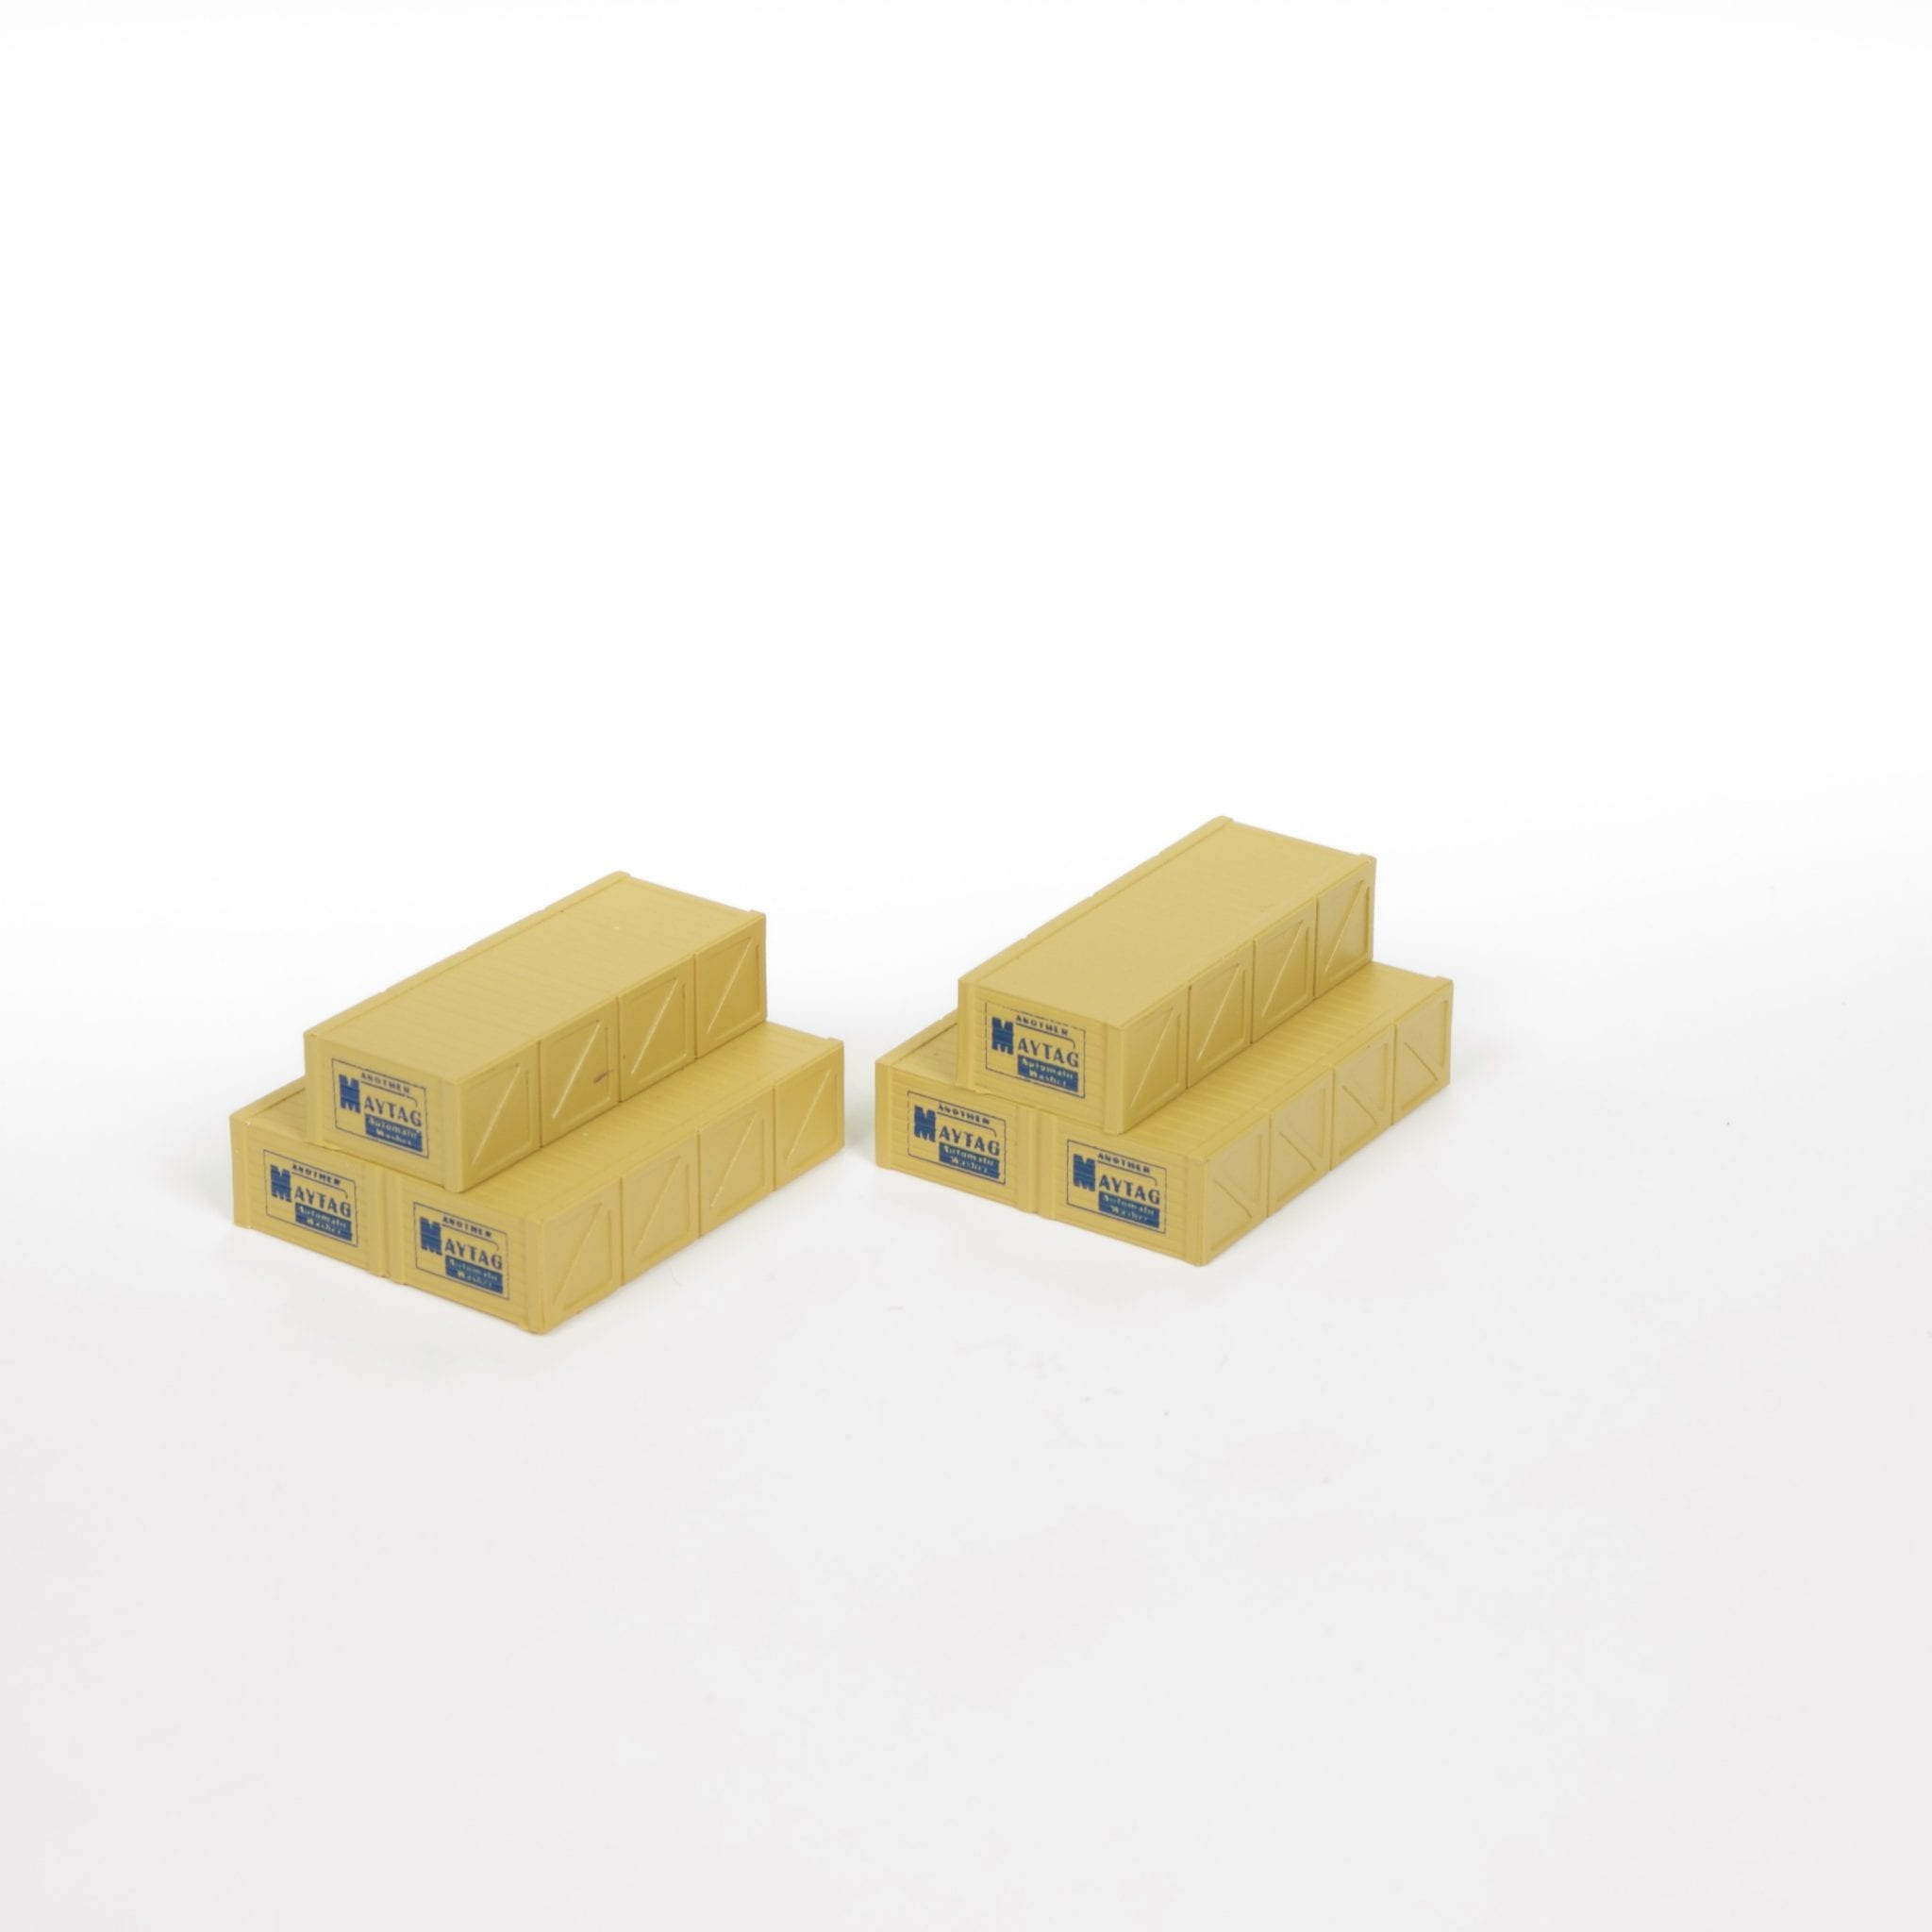 Mini Details Wooden Crates Maytag Accessory Set Ho Scale Round2